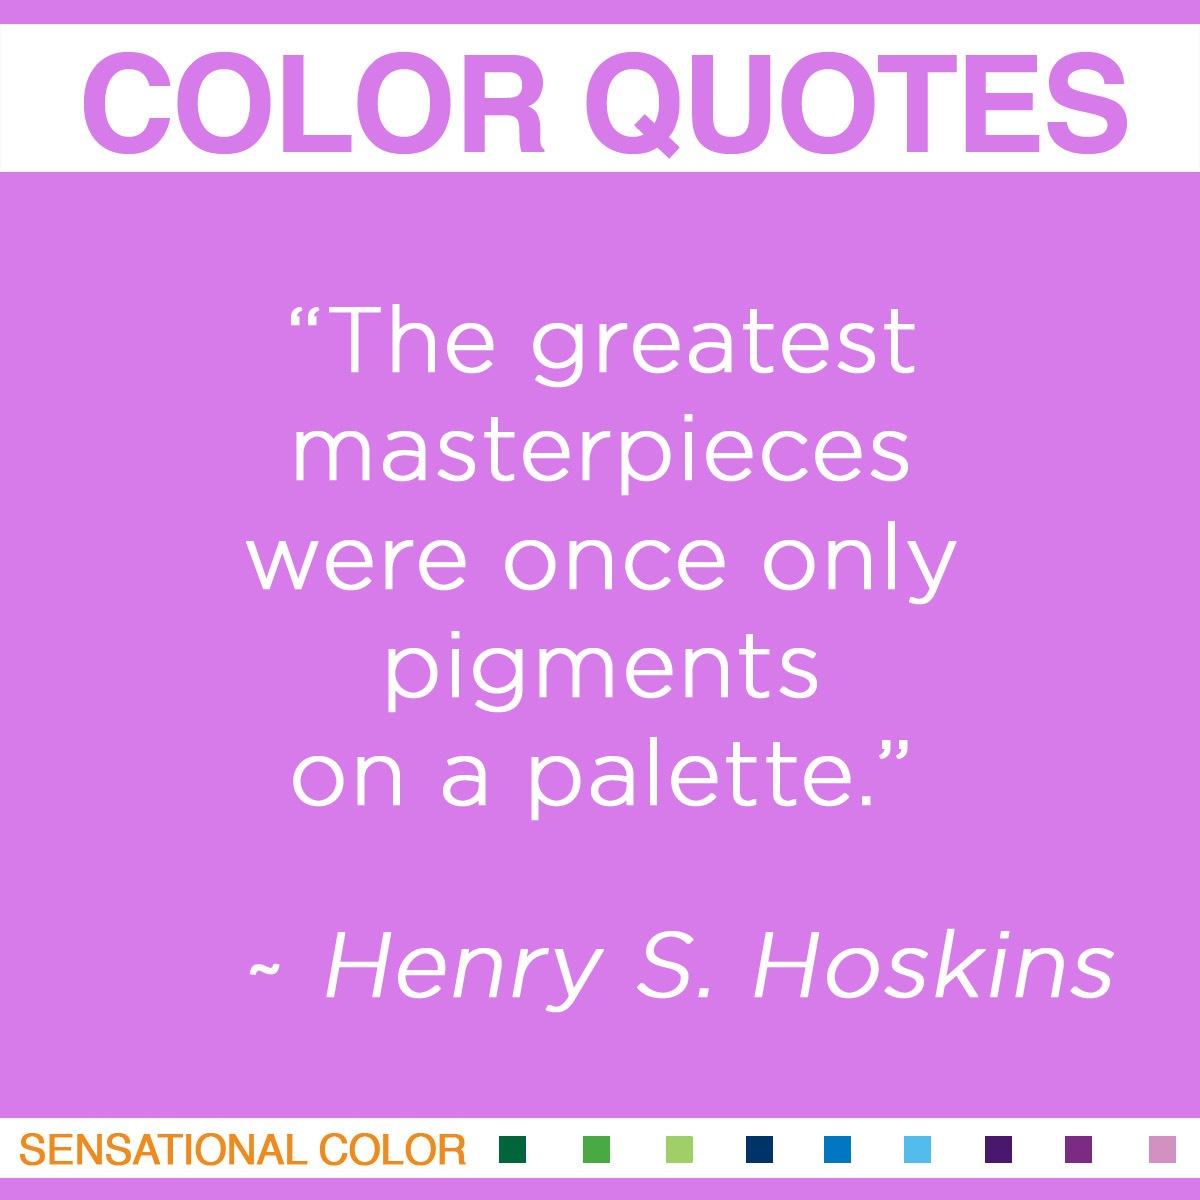 """The greatest masterpieces were once only pigments on a palette."" - Henry S. Hoskins"